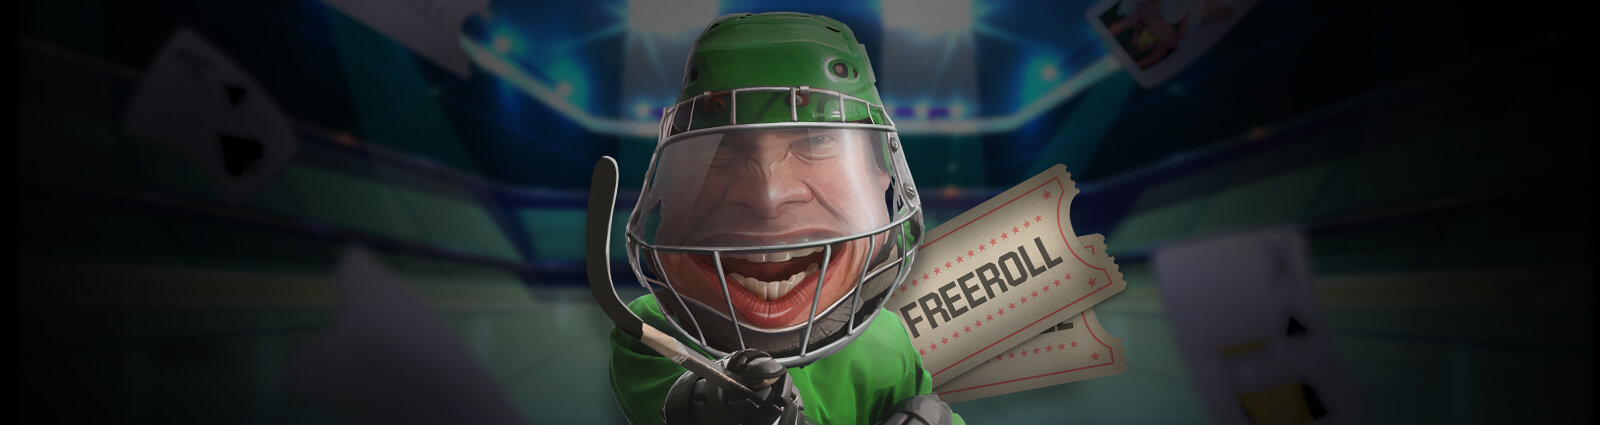 Promo page banner Unibet Poker Sports Betting Freeroll May 2019